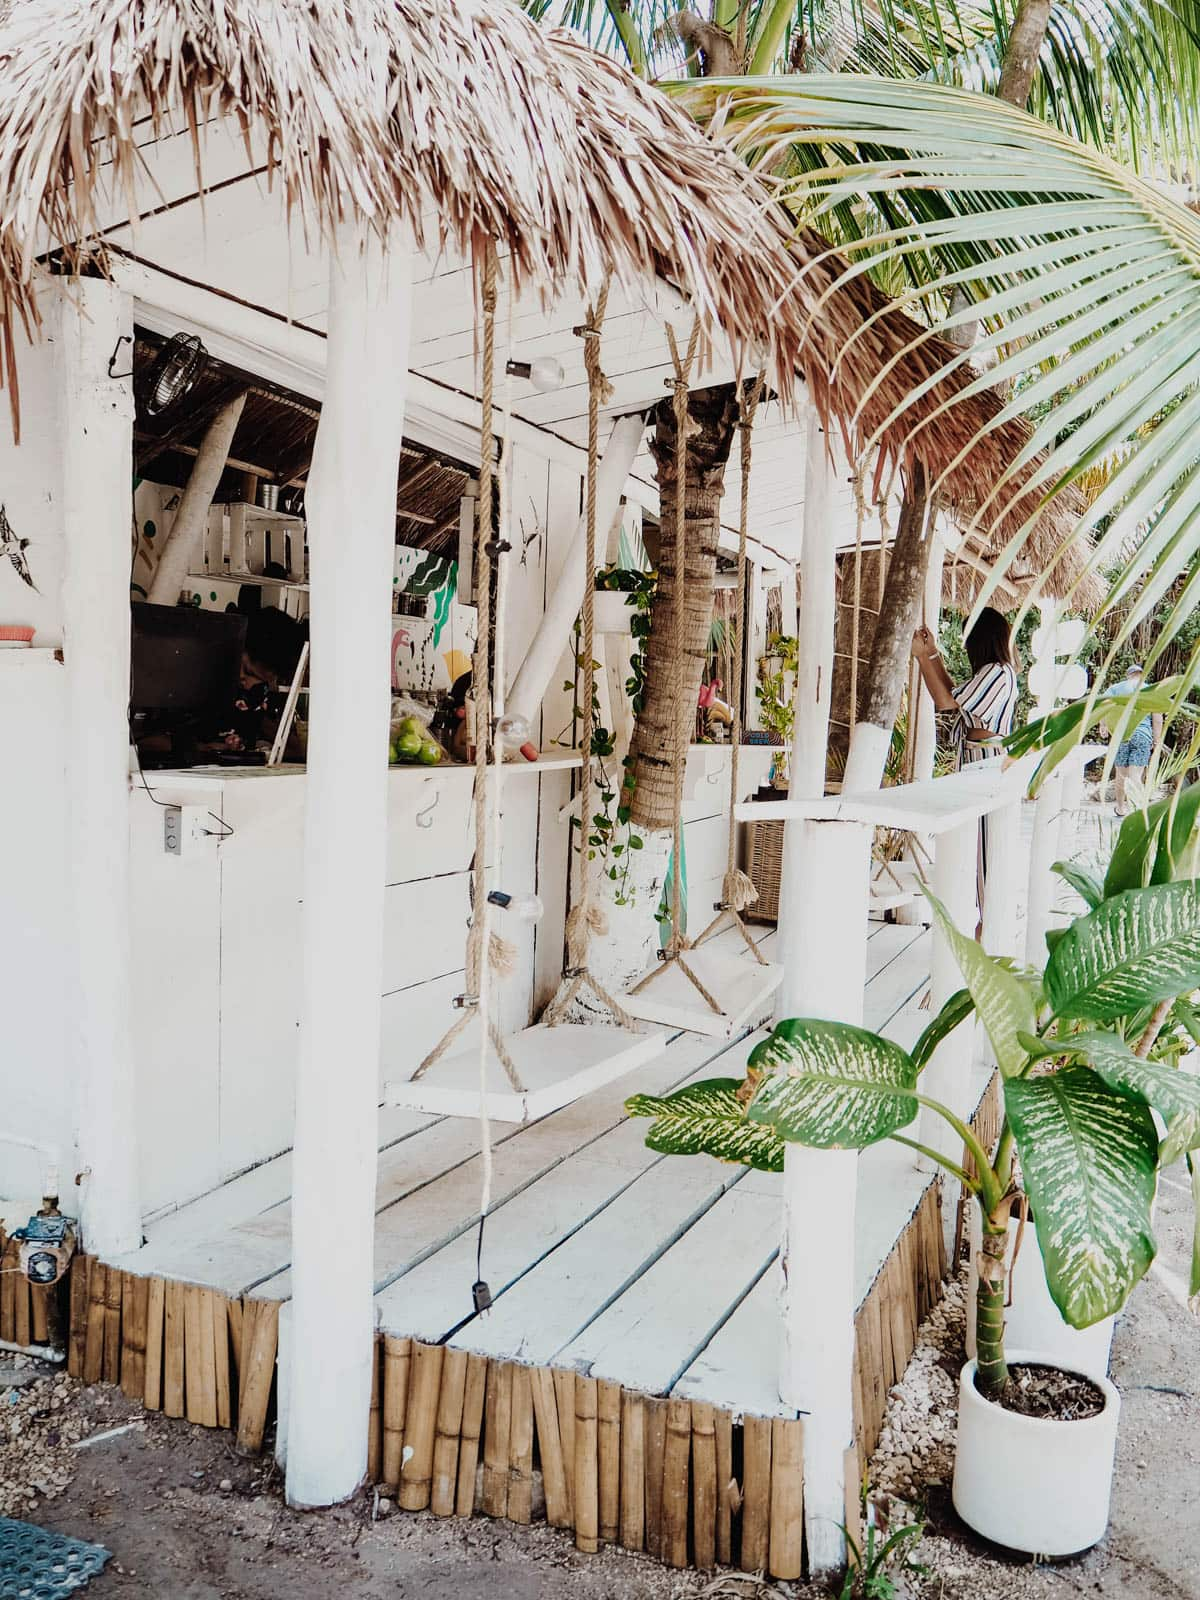 The Best Restaurants In Tulum According To A Food Blogger